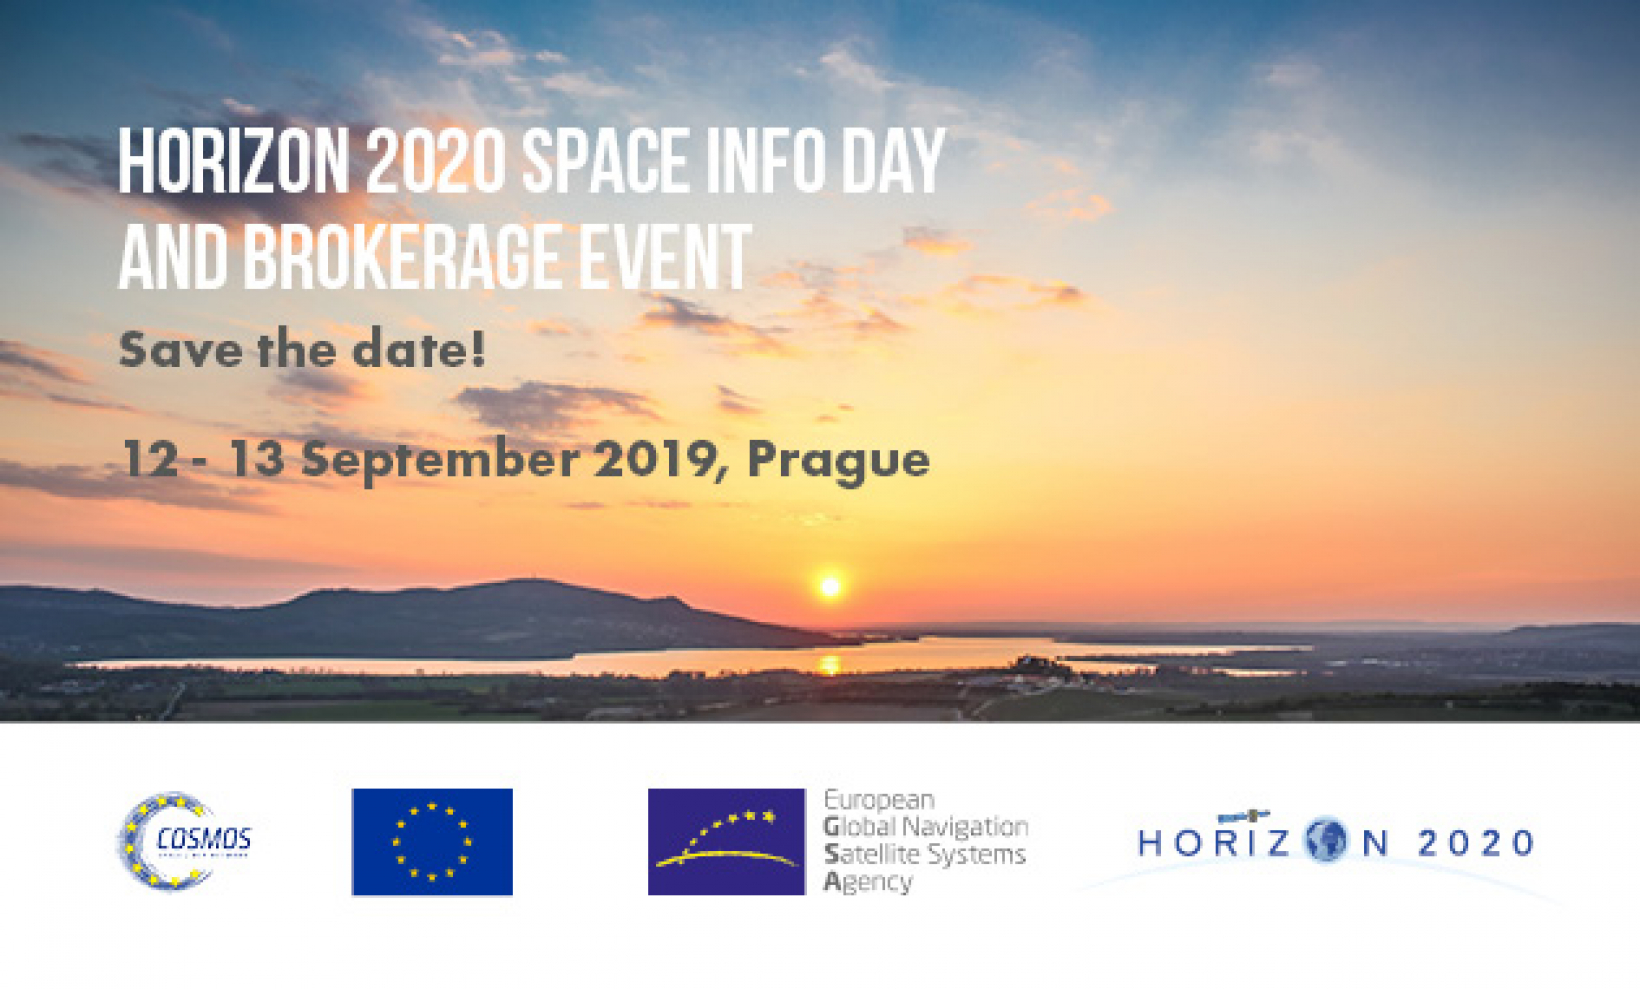 The Horizon 2020 Space Information Day and Brokerage Event will take place in Prague on 12-13 September 2019.